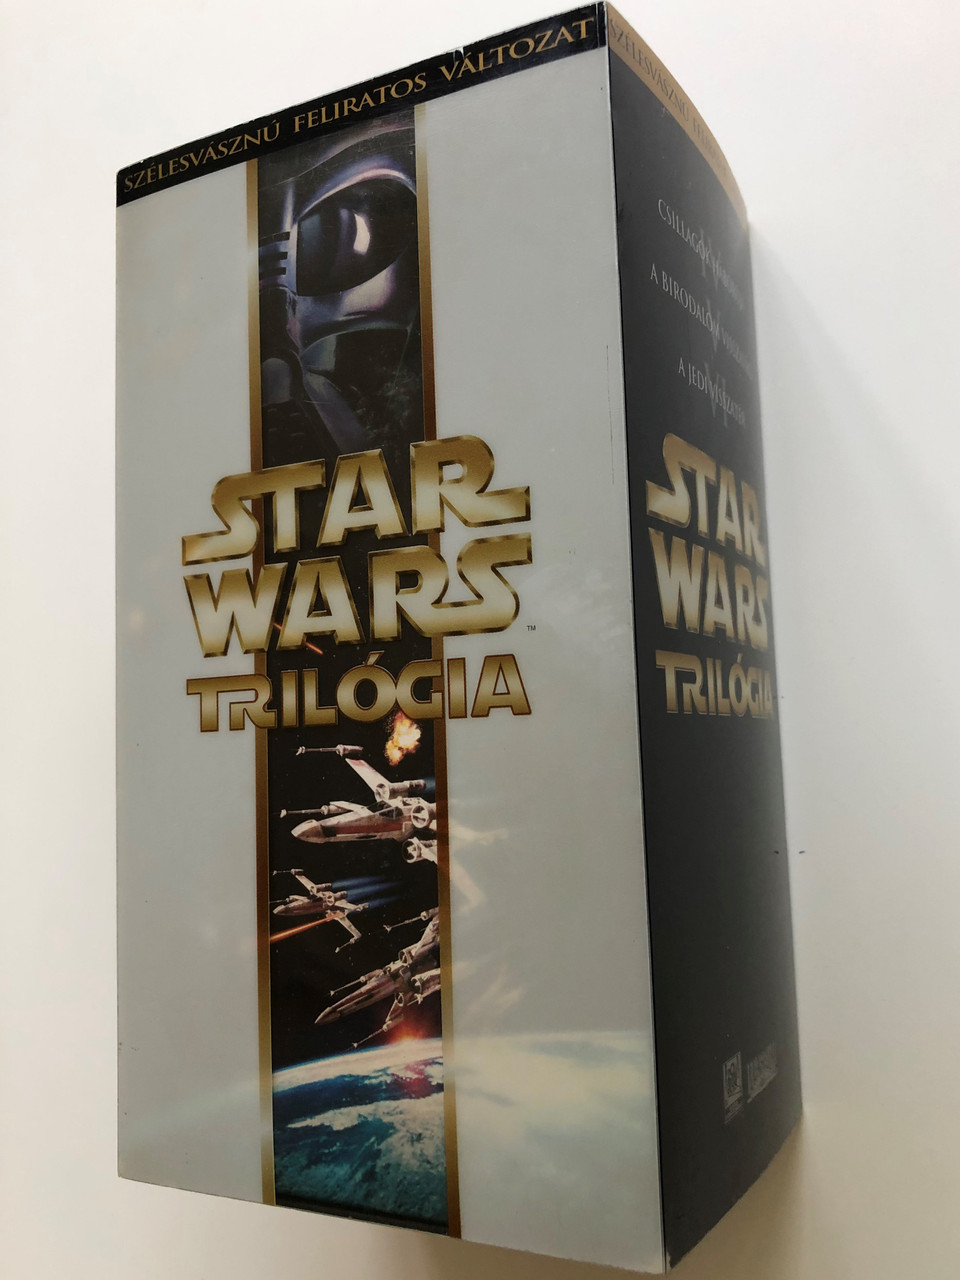 Star Wars Trilogy Vhs Set 2000 Episode Iv A New Hope V The Empire Strikes Back Vi Return Of The Jedi Star Wars Trilogia A Csillagok Haboruja A Birodalom Visszavag A